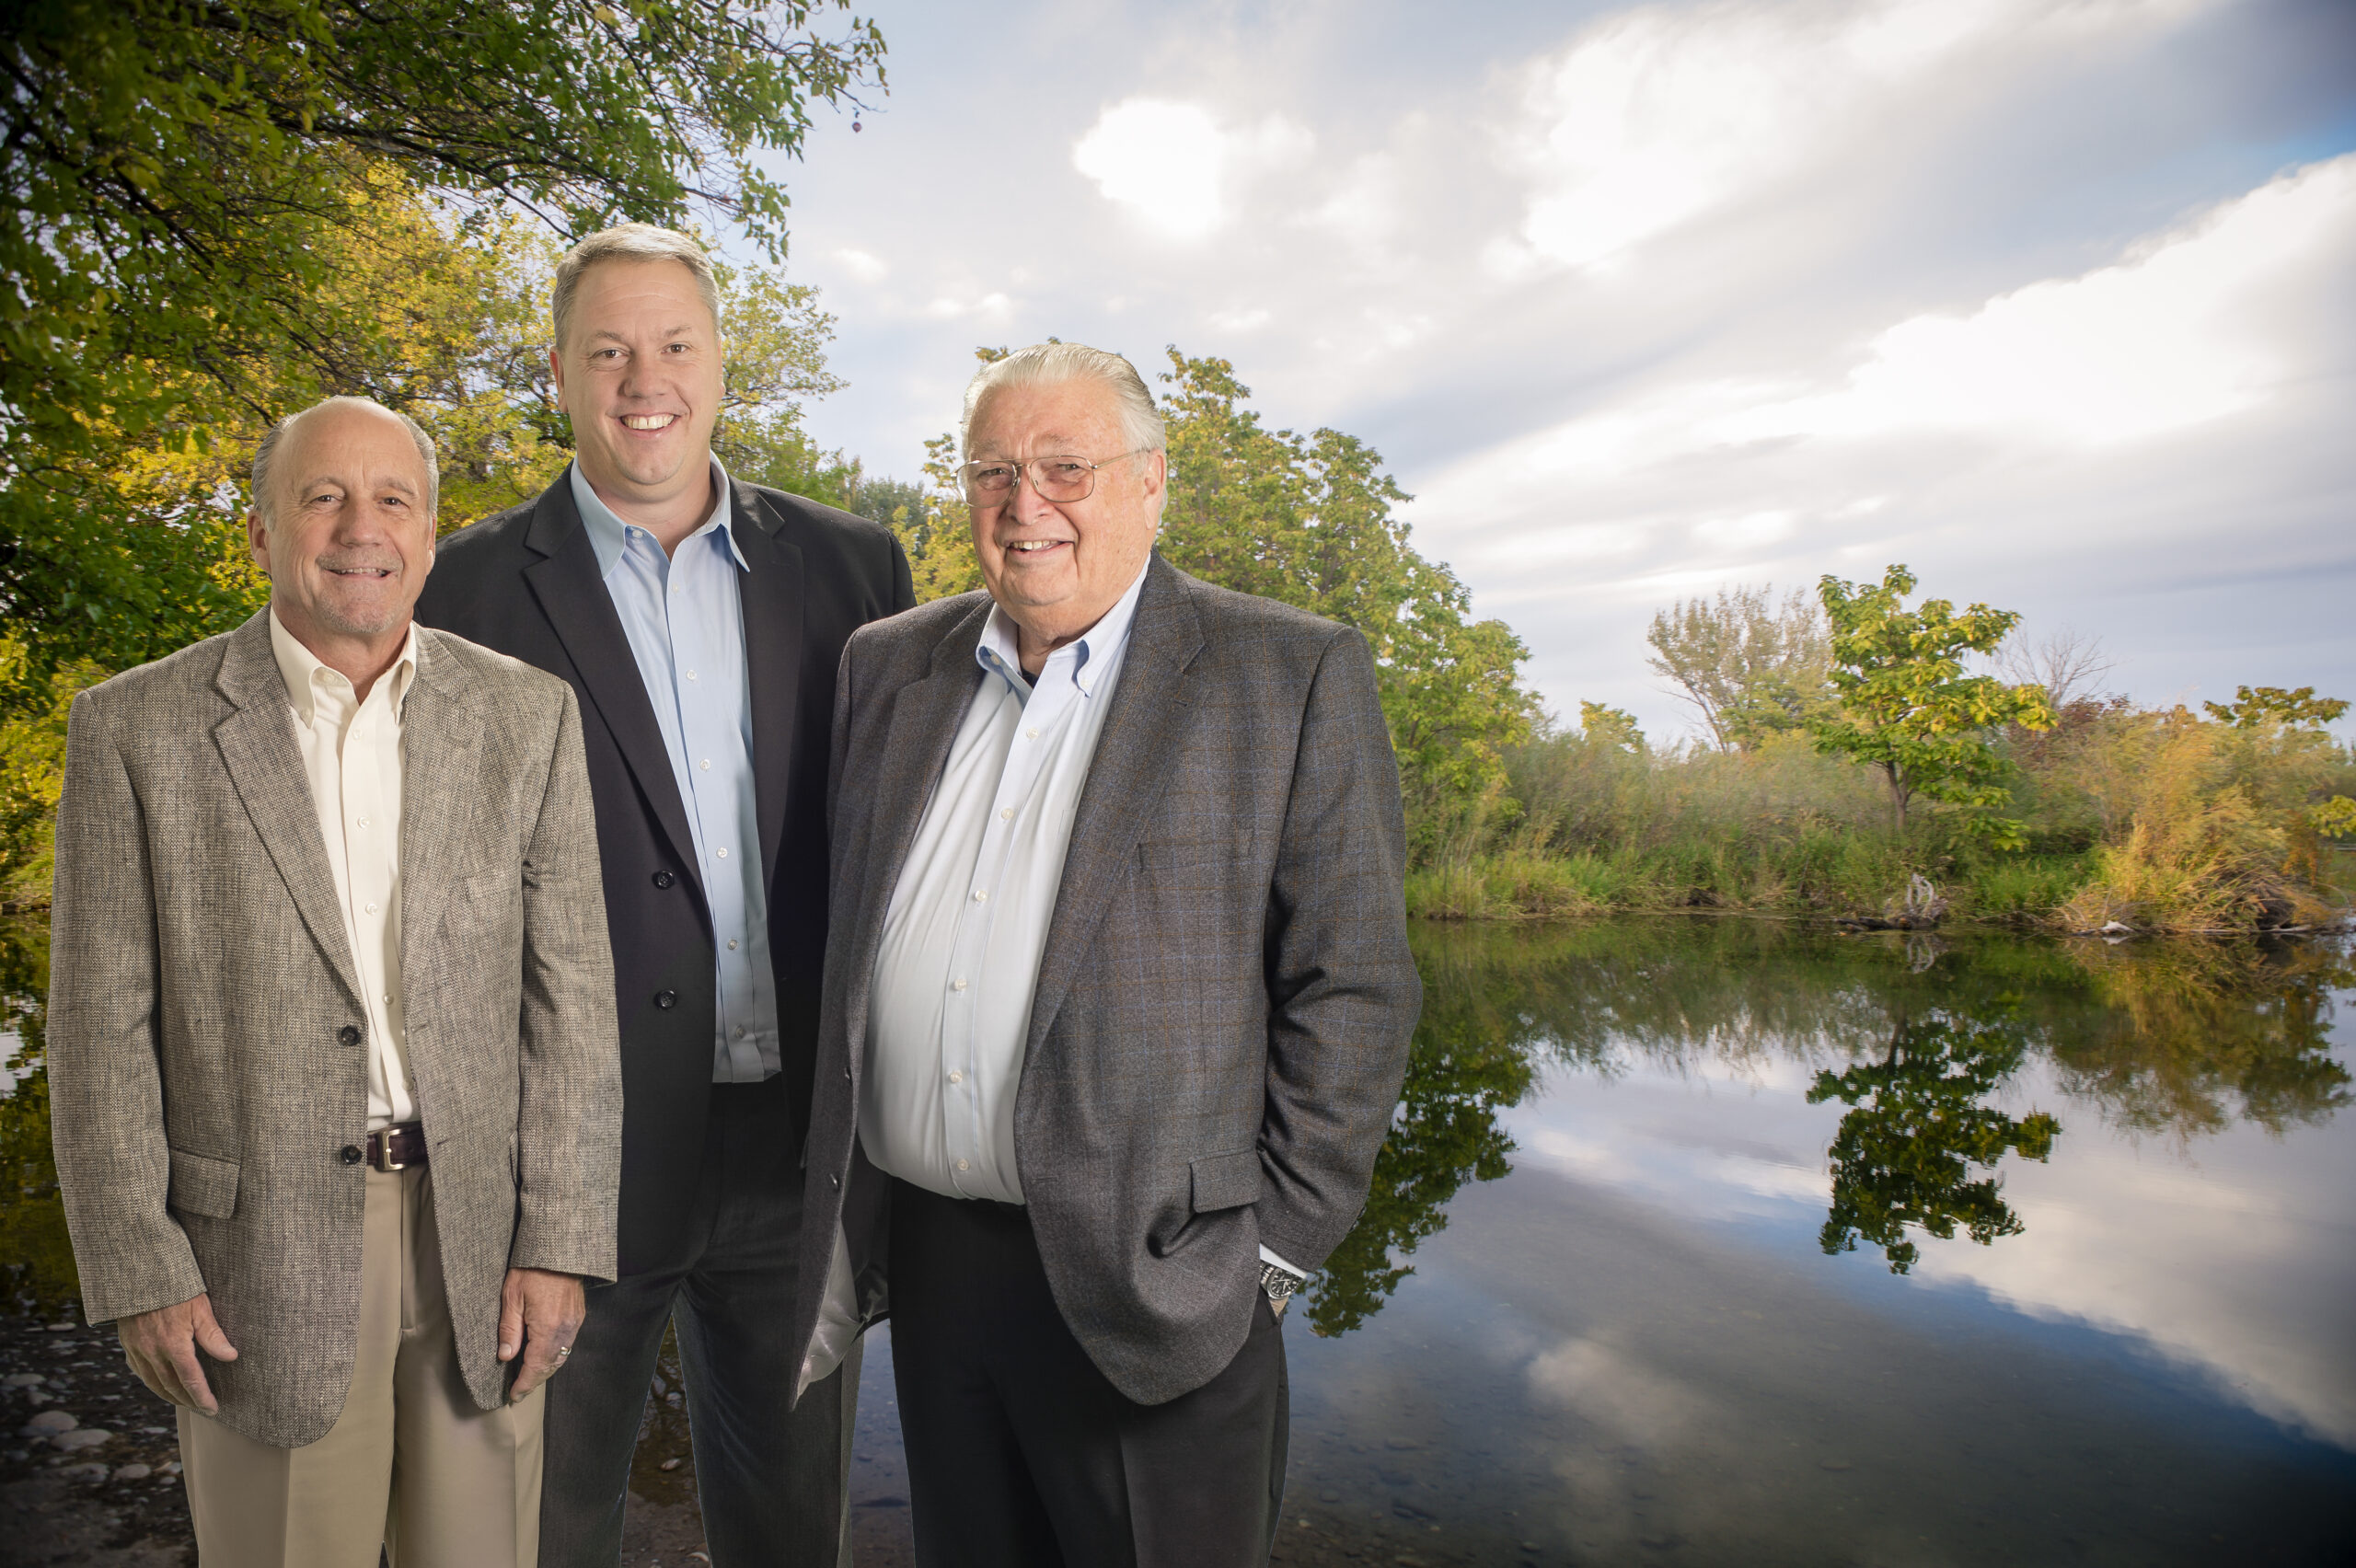 Former Presidents of Community First Bank pictured left to right: Rick Peenstra, Eric Pearson, Rich Emery